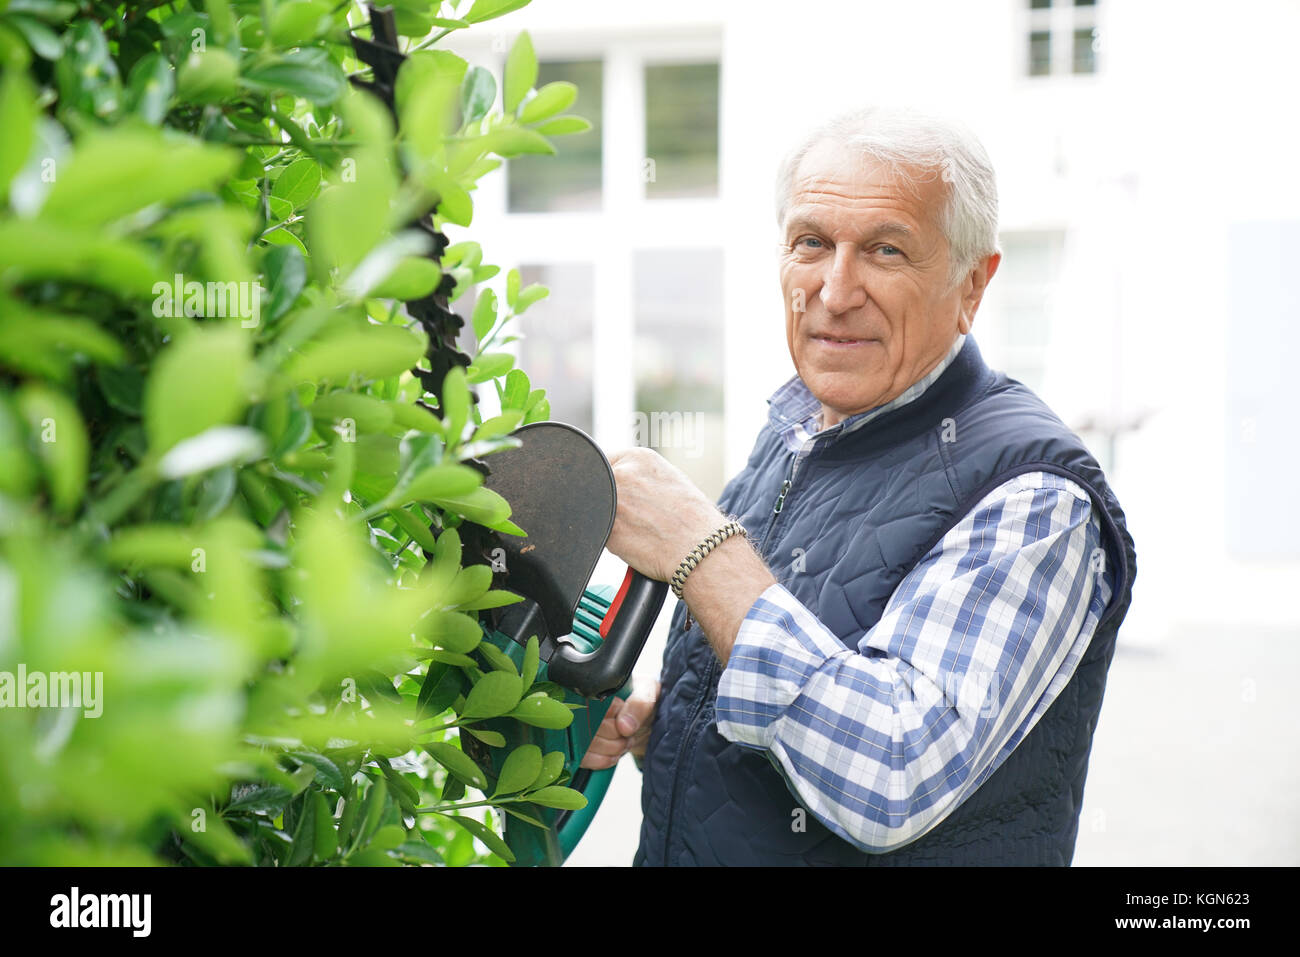 Senior man using hedge trimmer Stock Photo